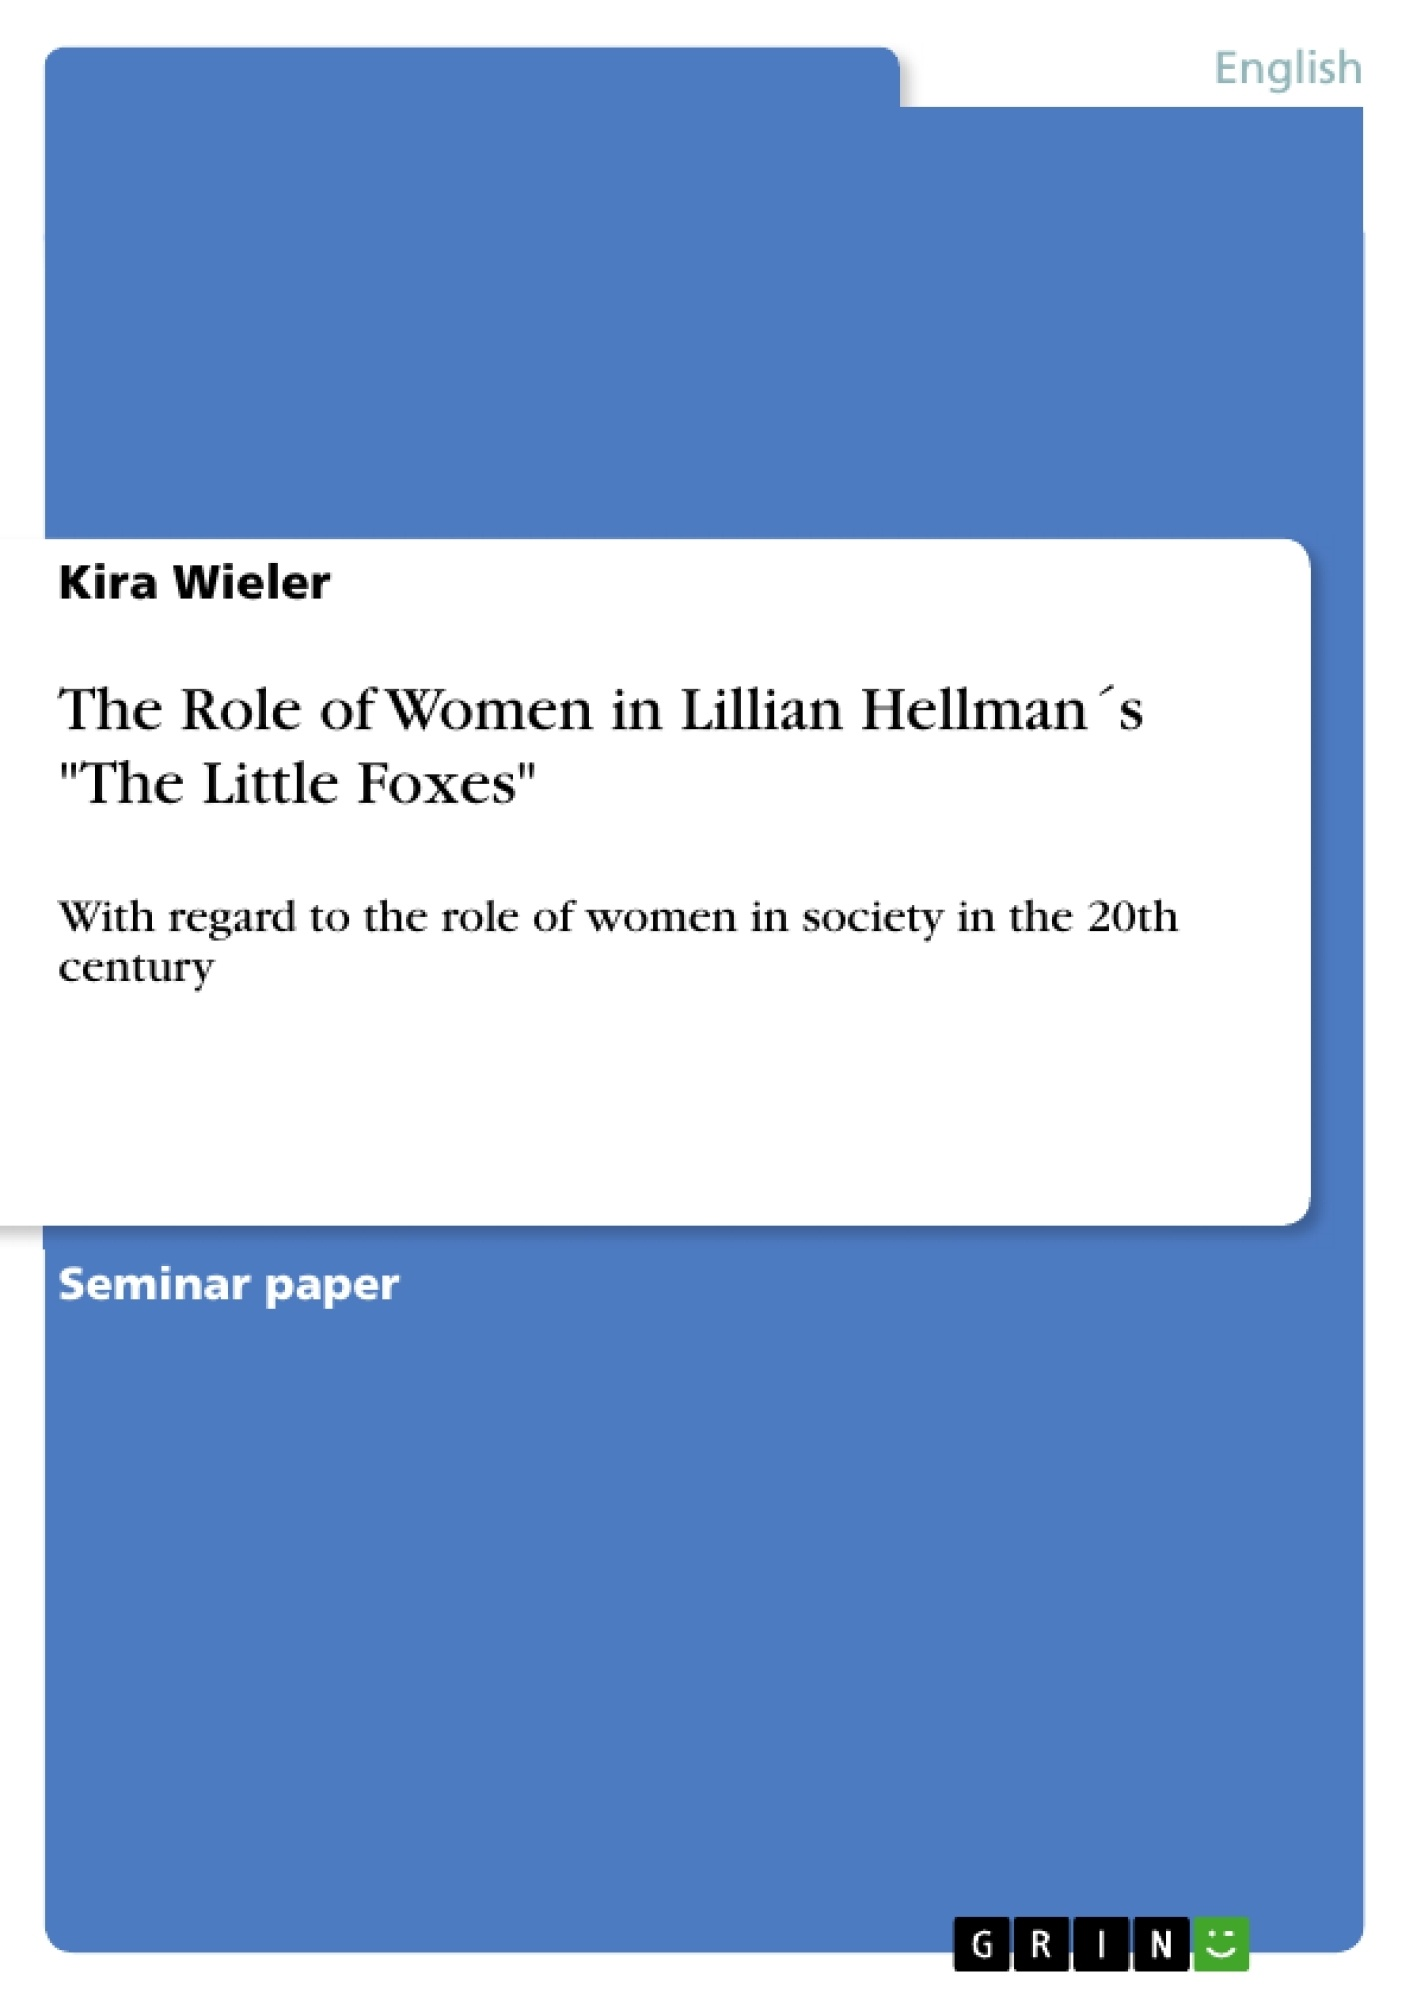 essay on role of women in society vermont women s history vermont  the role of women in lillian hellman acute s the little foxes the role of women